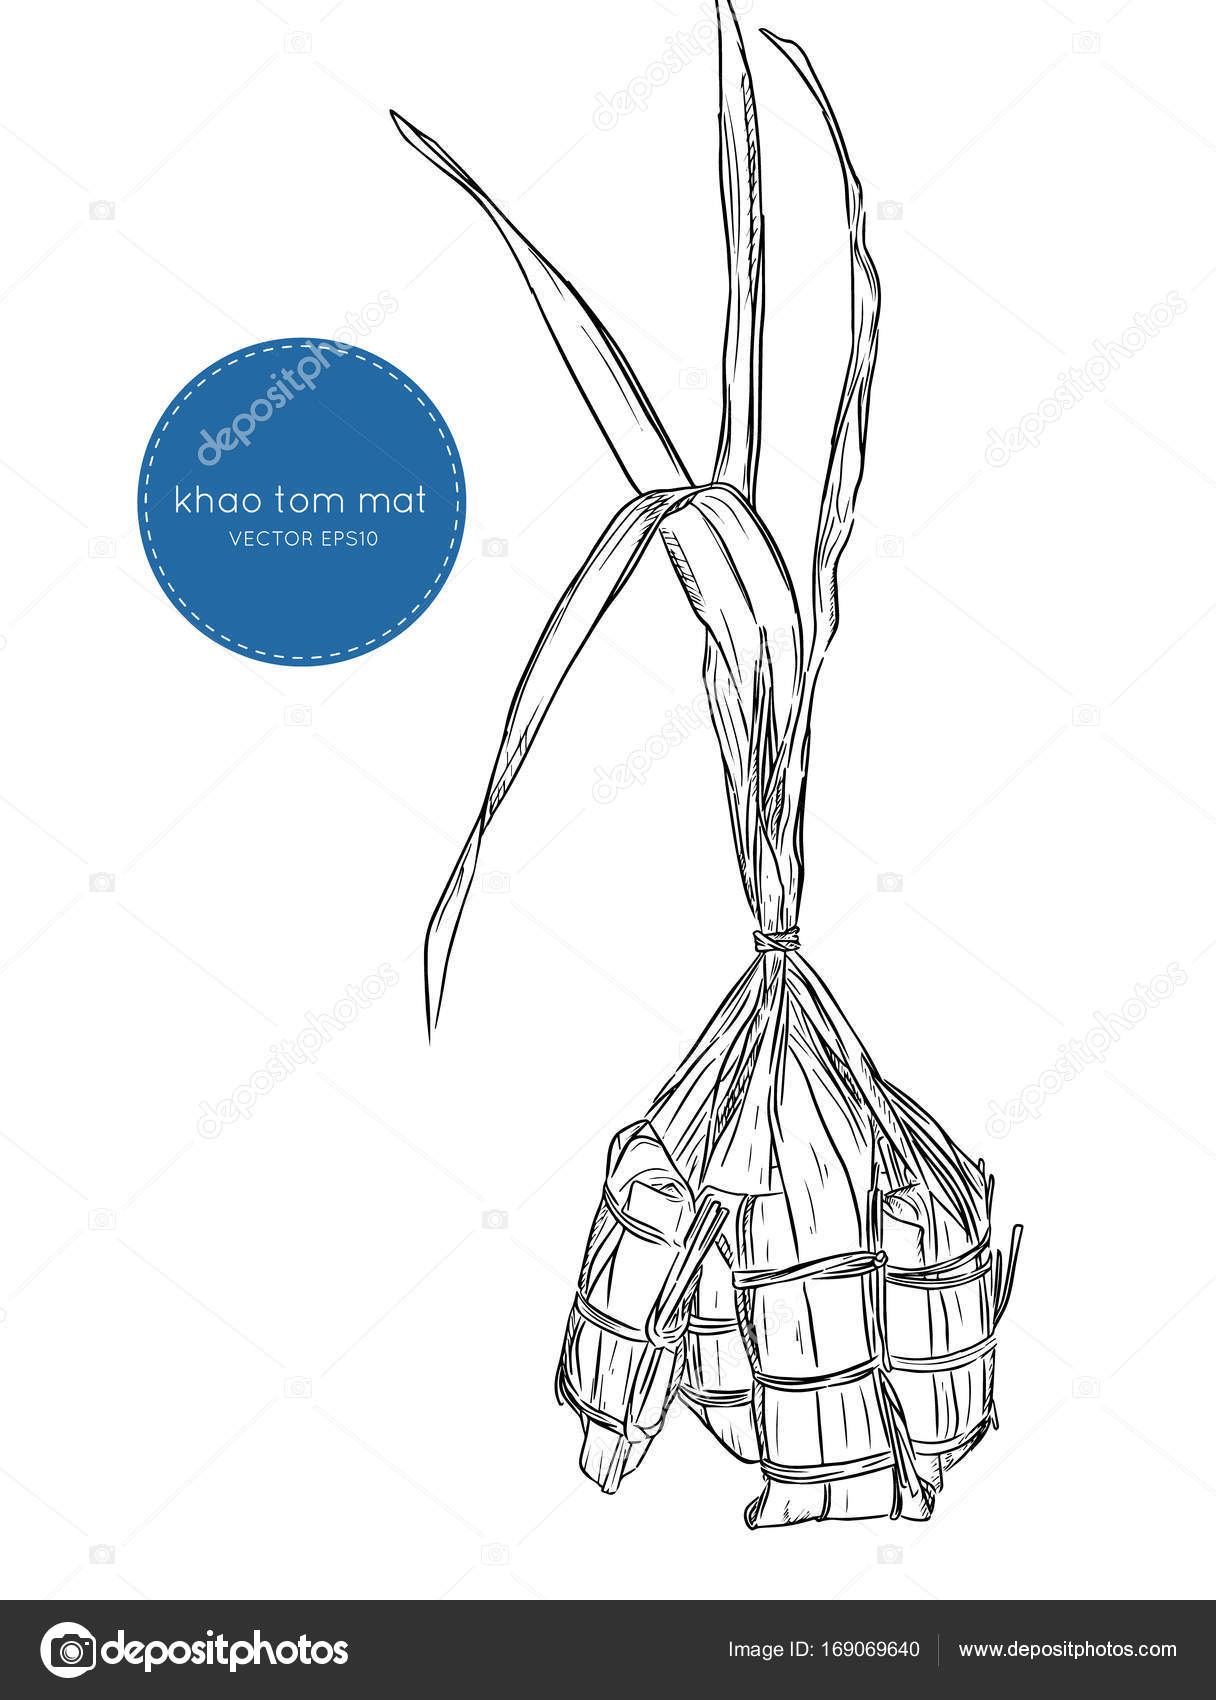 hight resolution of bananas with sticky rice khao tom mat or khao tom pad hand draw sketch vector